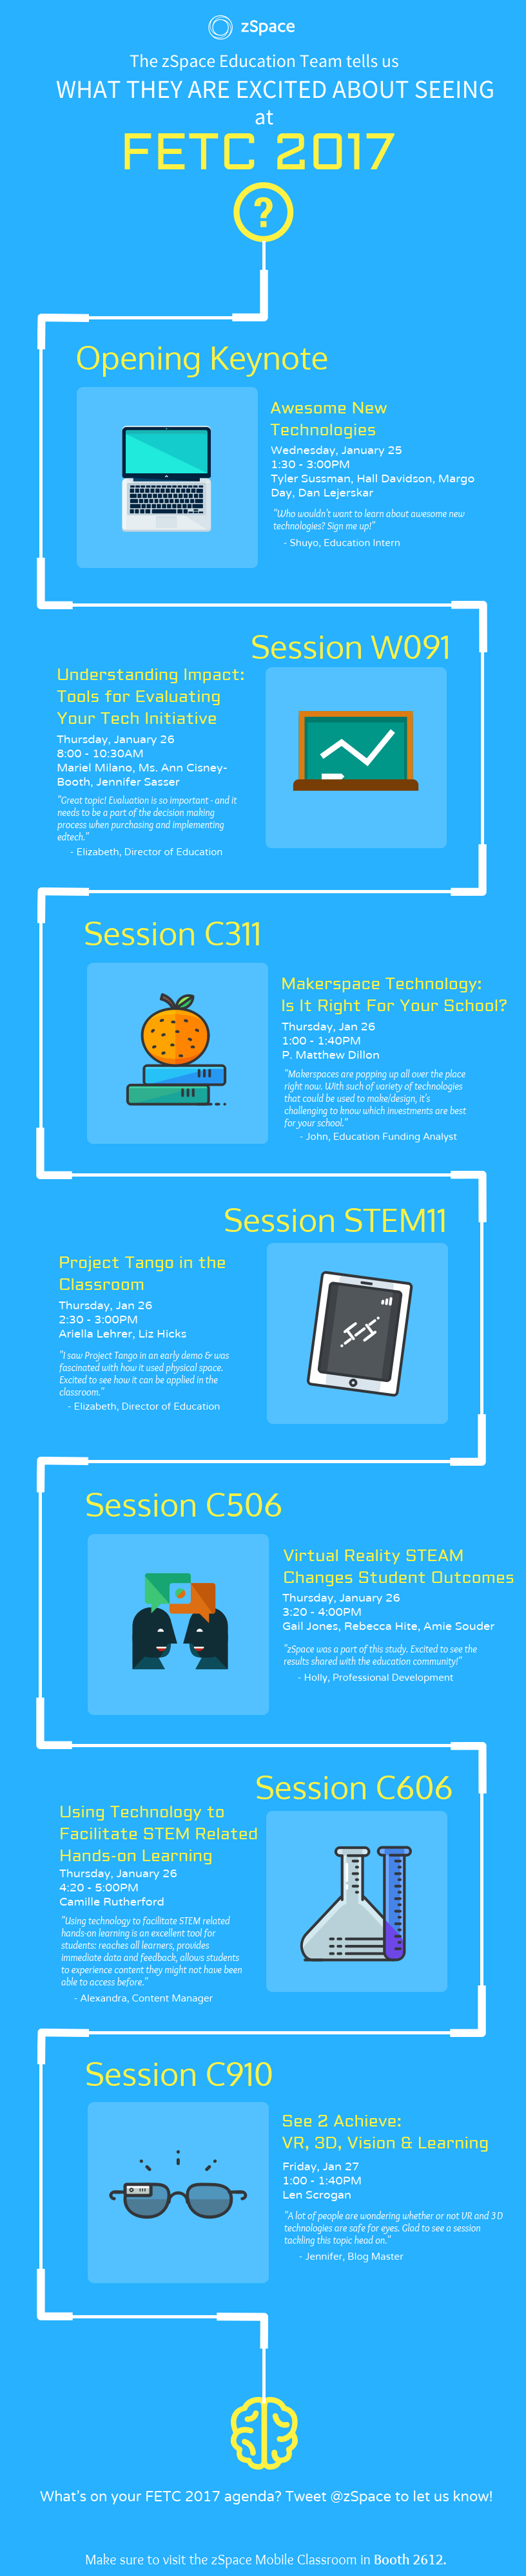 FETC 2017 Infographic by the zSpace Education Team